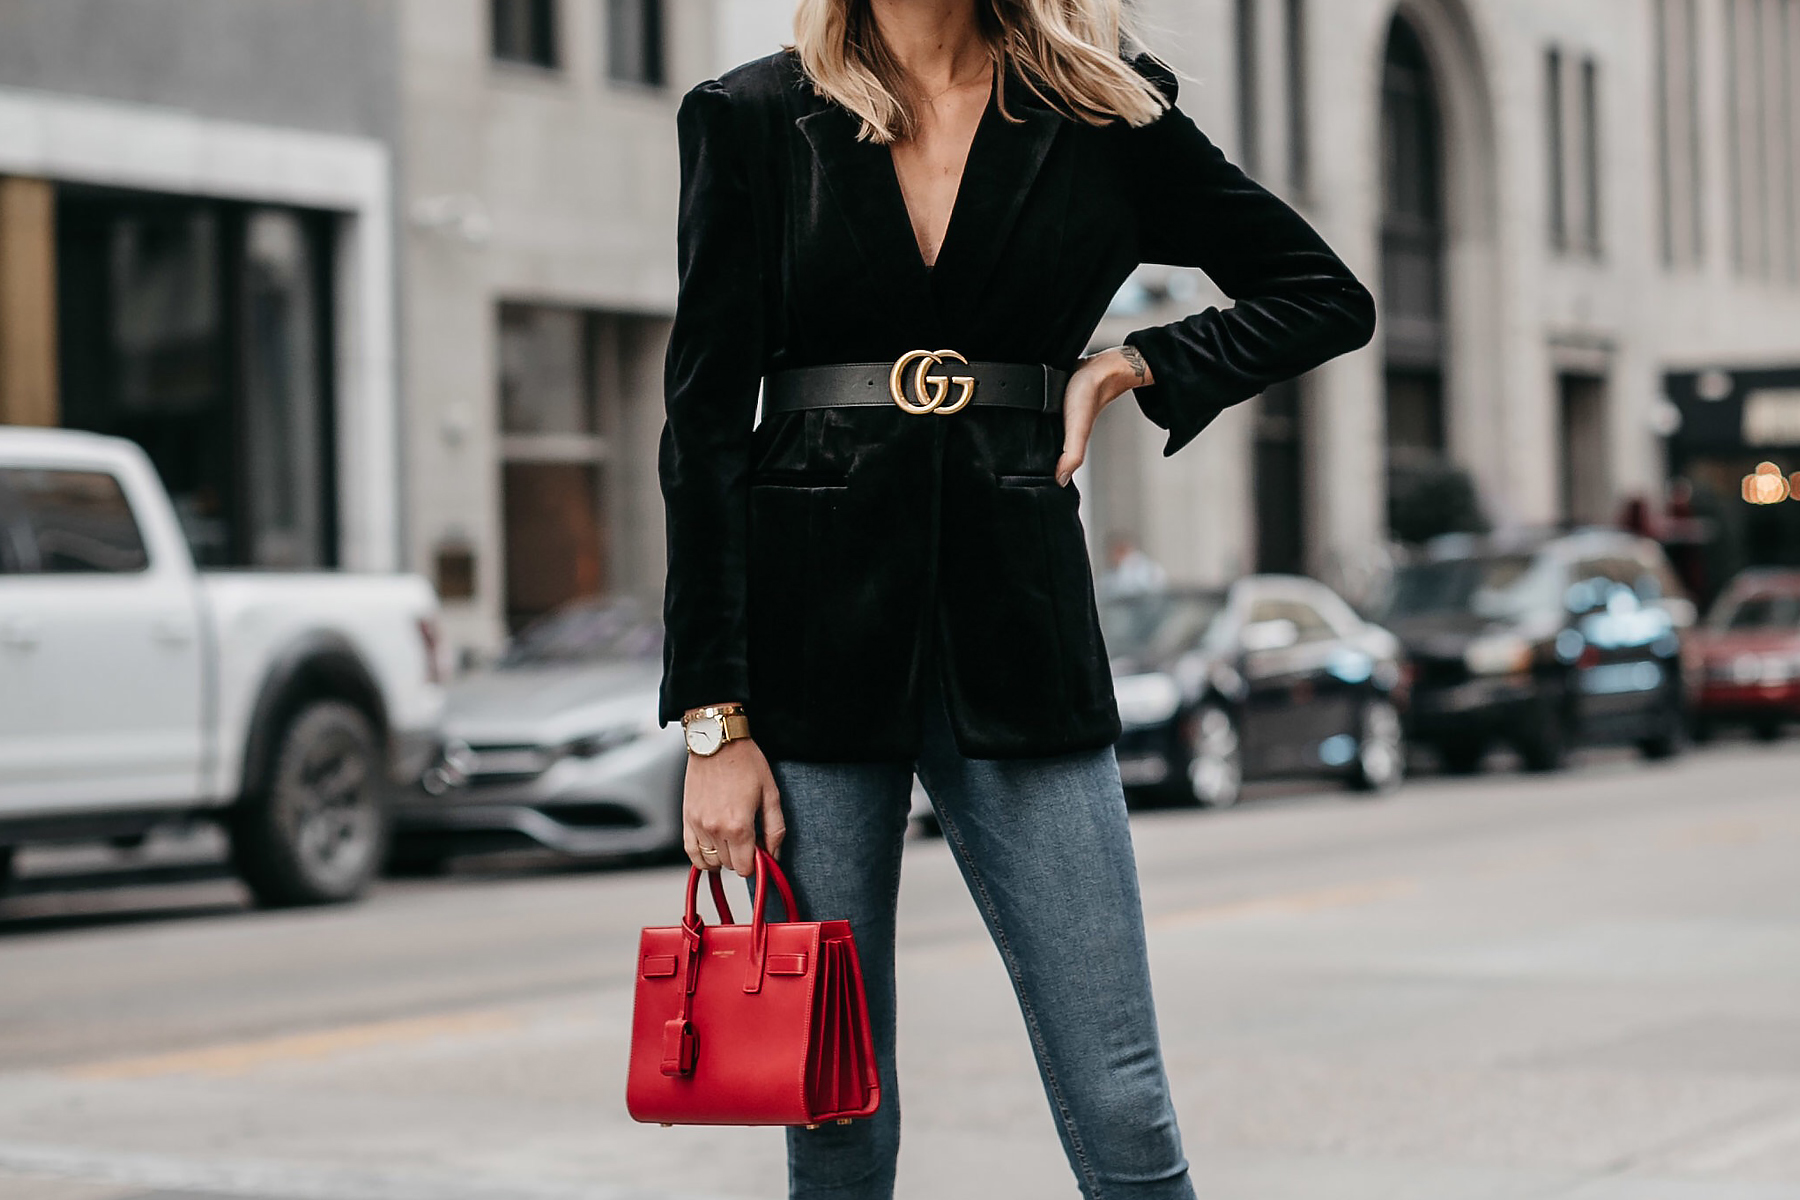 Black Velvet Blazer Gucci Marmont Belt Denim Skinny Jeans Saint Laurent Red Sac De Jour Fashion Jackson Dallas Blogger Fashion Blogger Street Style